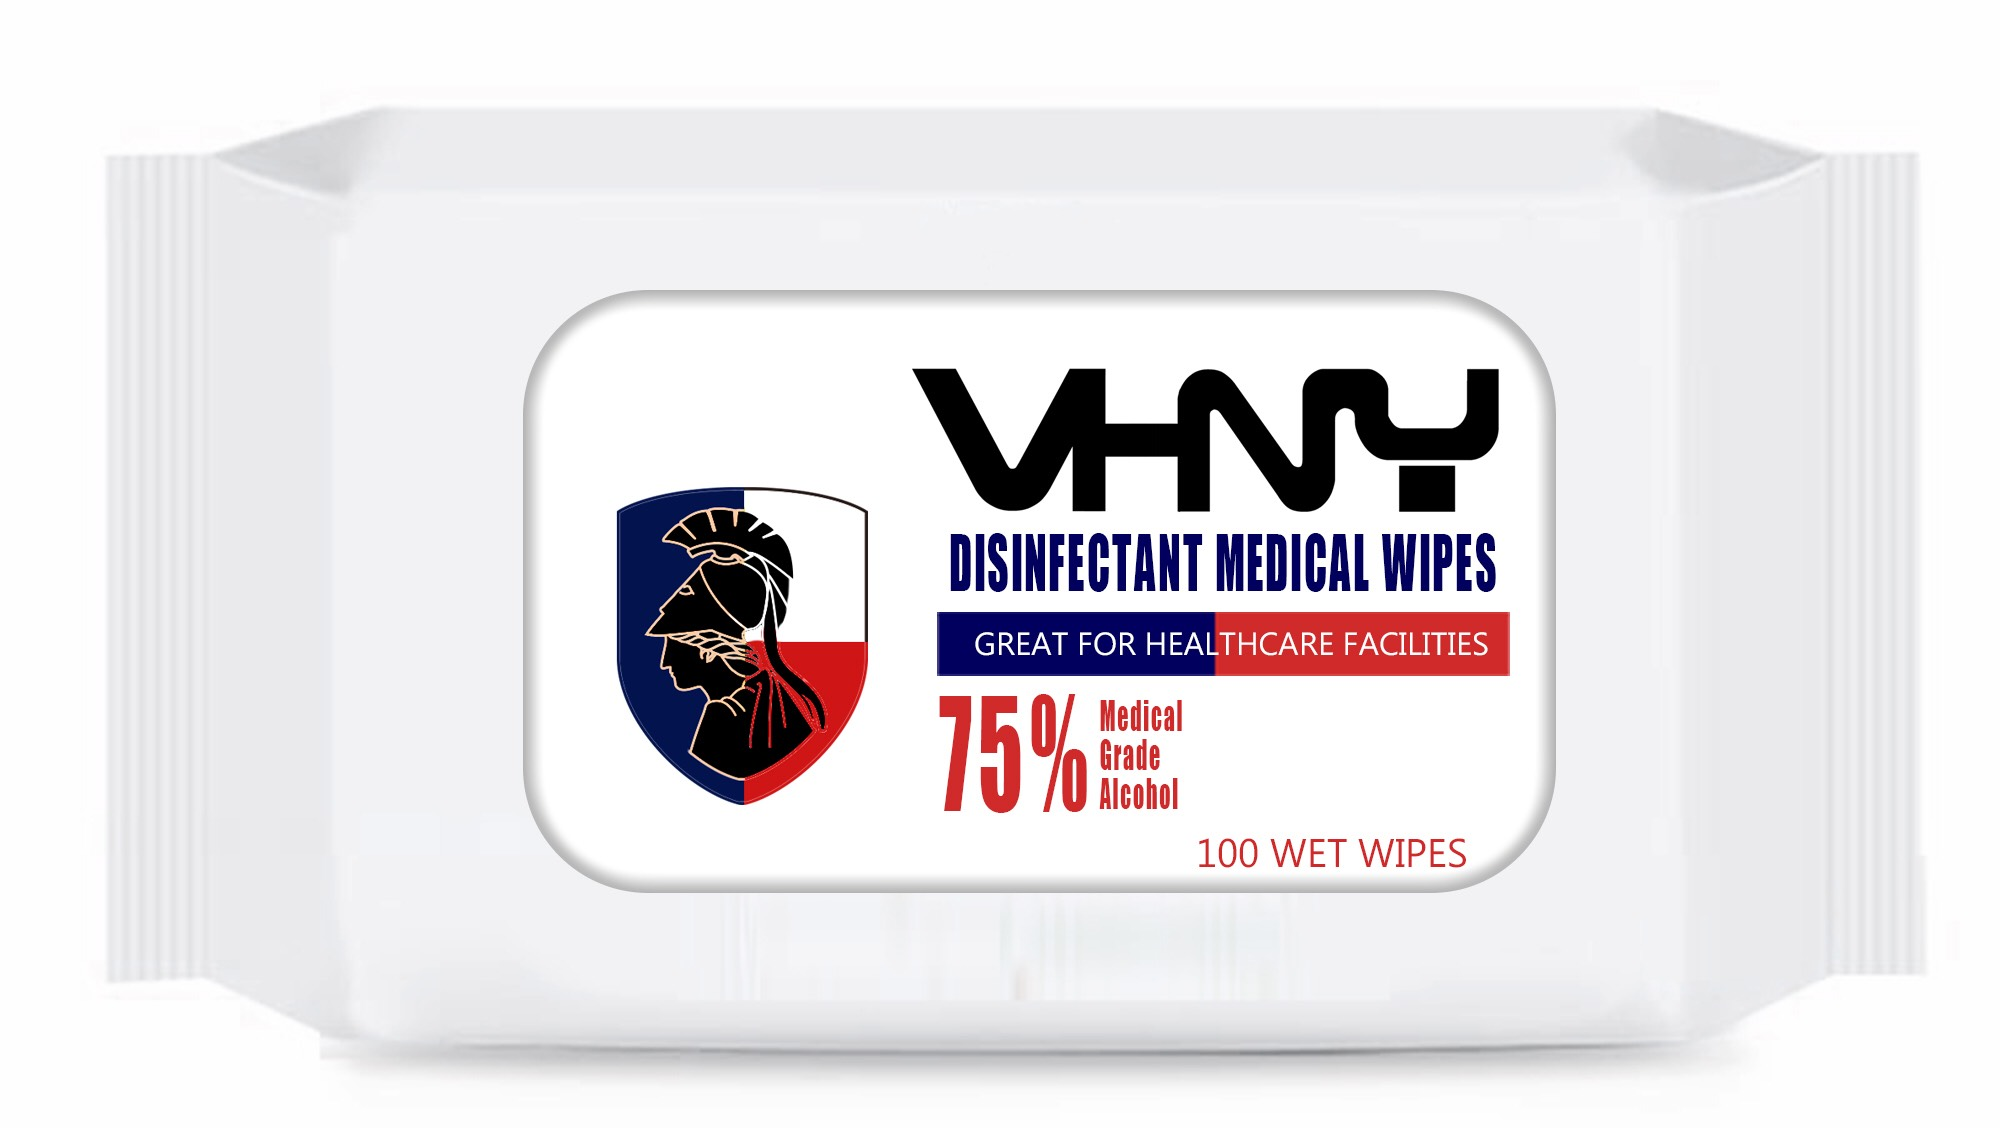 Disinfecting Medical Wipes A